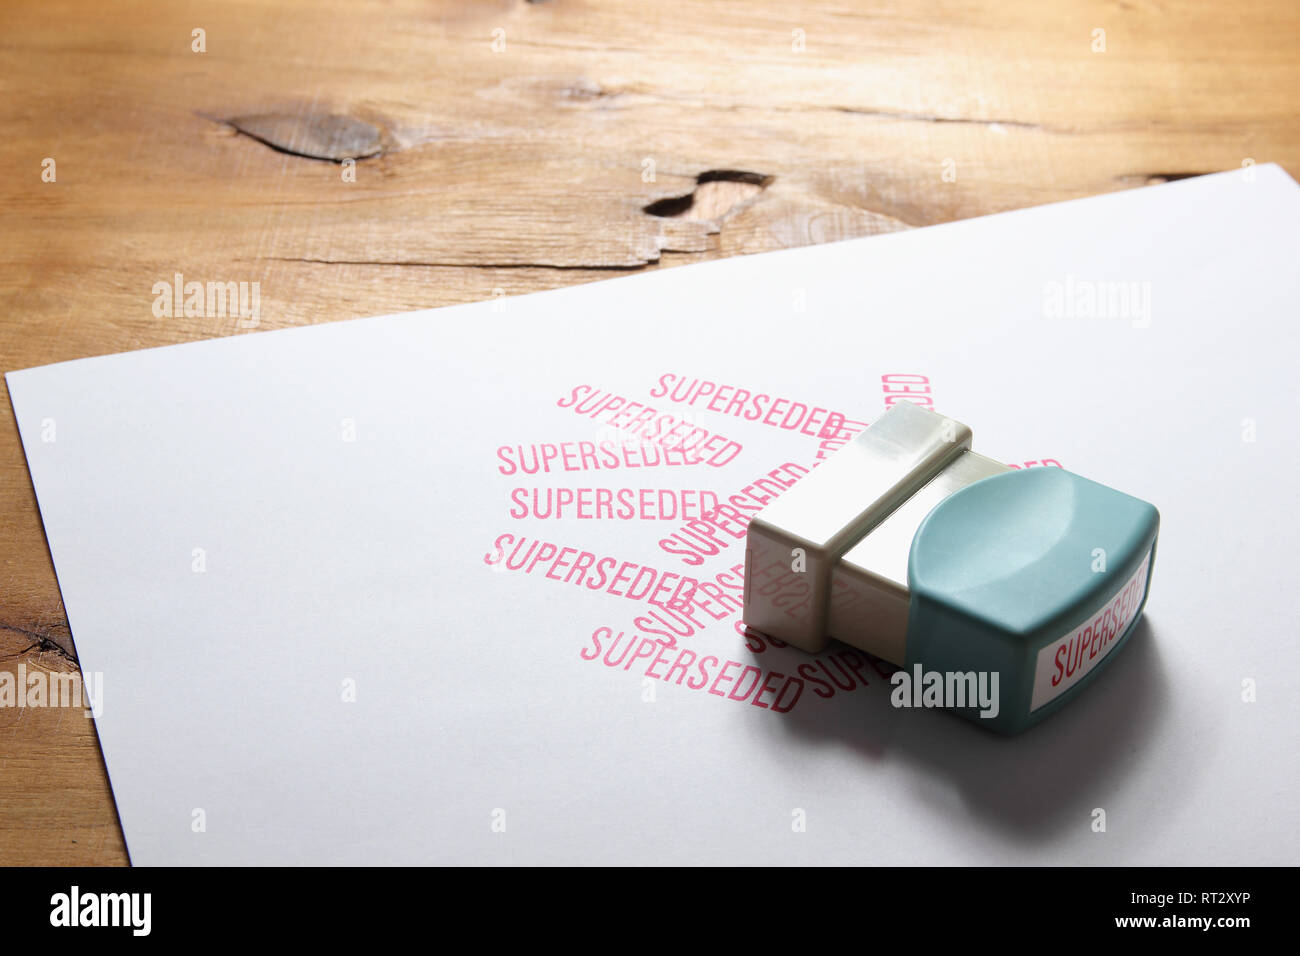 Rubber Stamp on Wooden Background - Stock Image